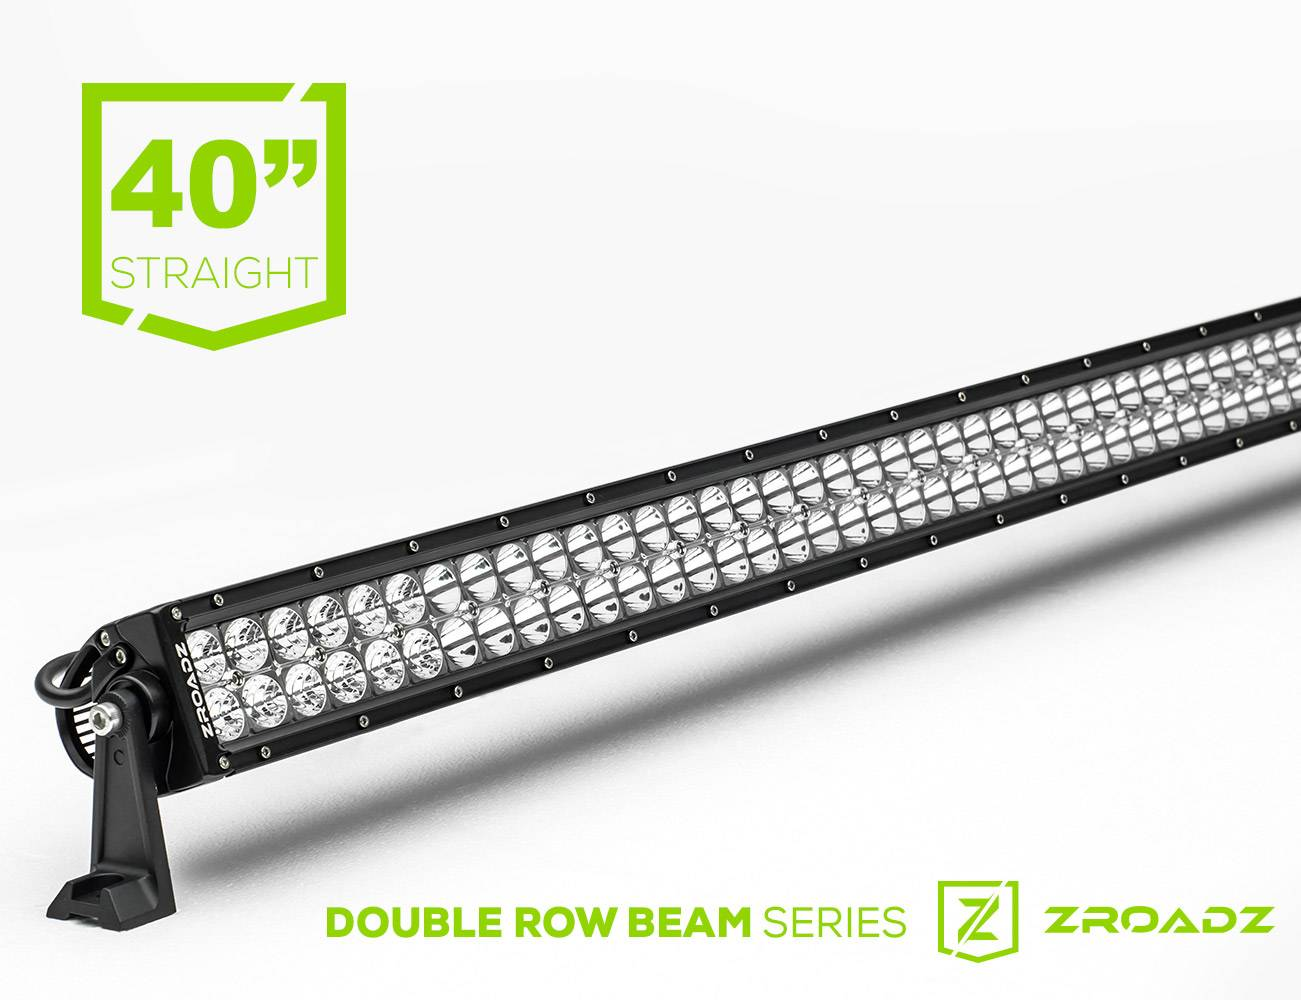 ZROADZ                                             - 40 Inch LED Straight Double Row Light Bar - PN #Z30BC14W240